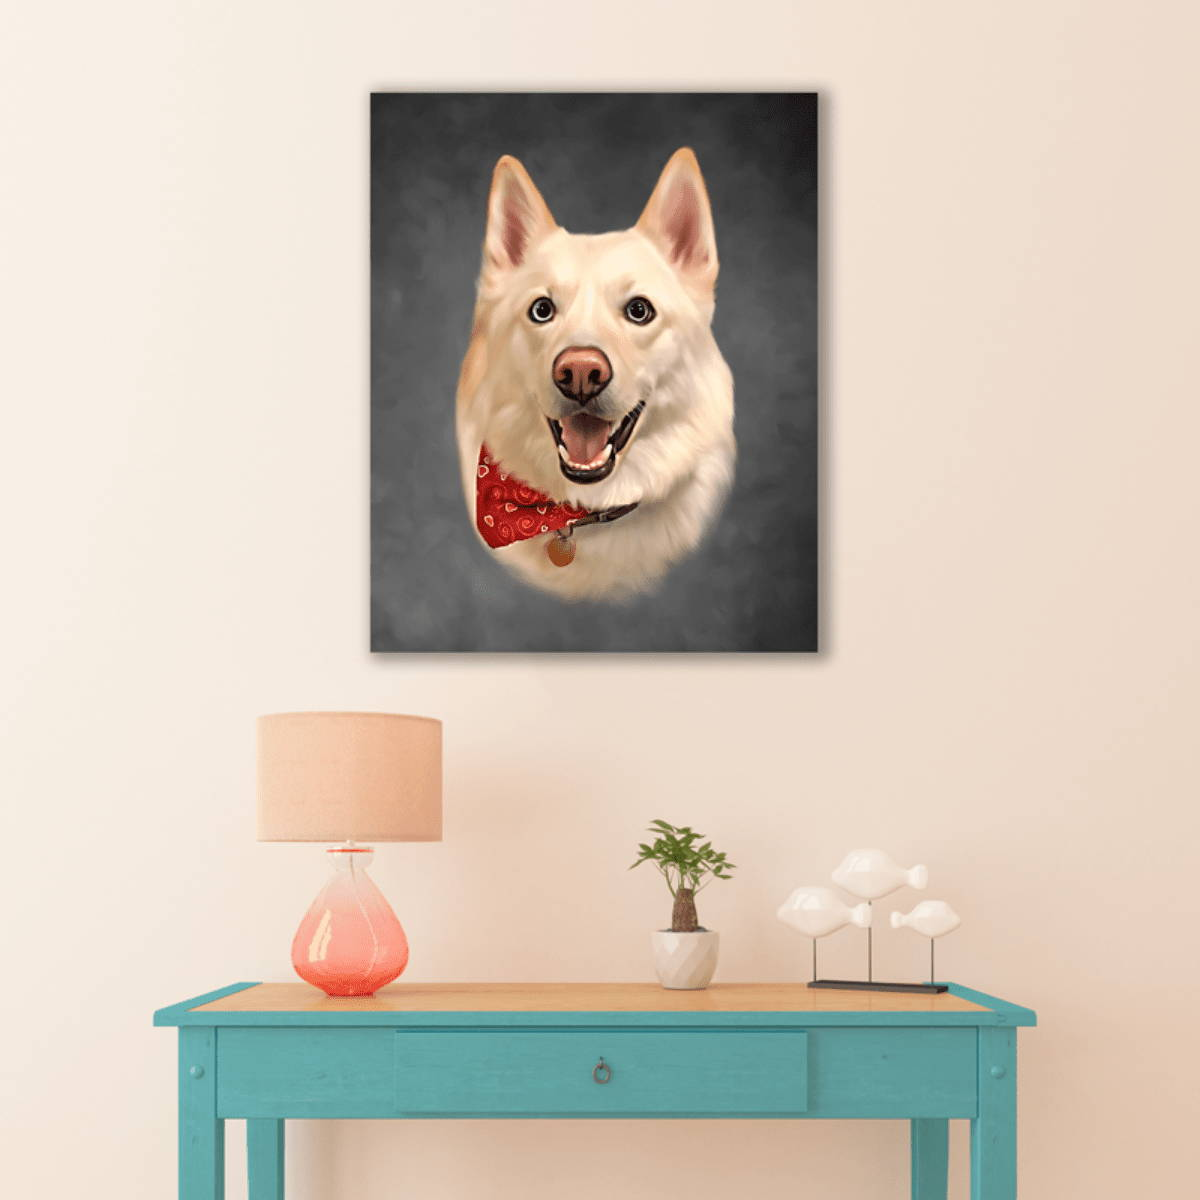 Dog picture on wall of home